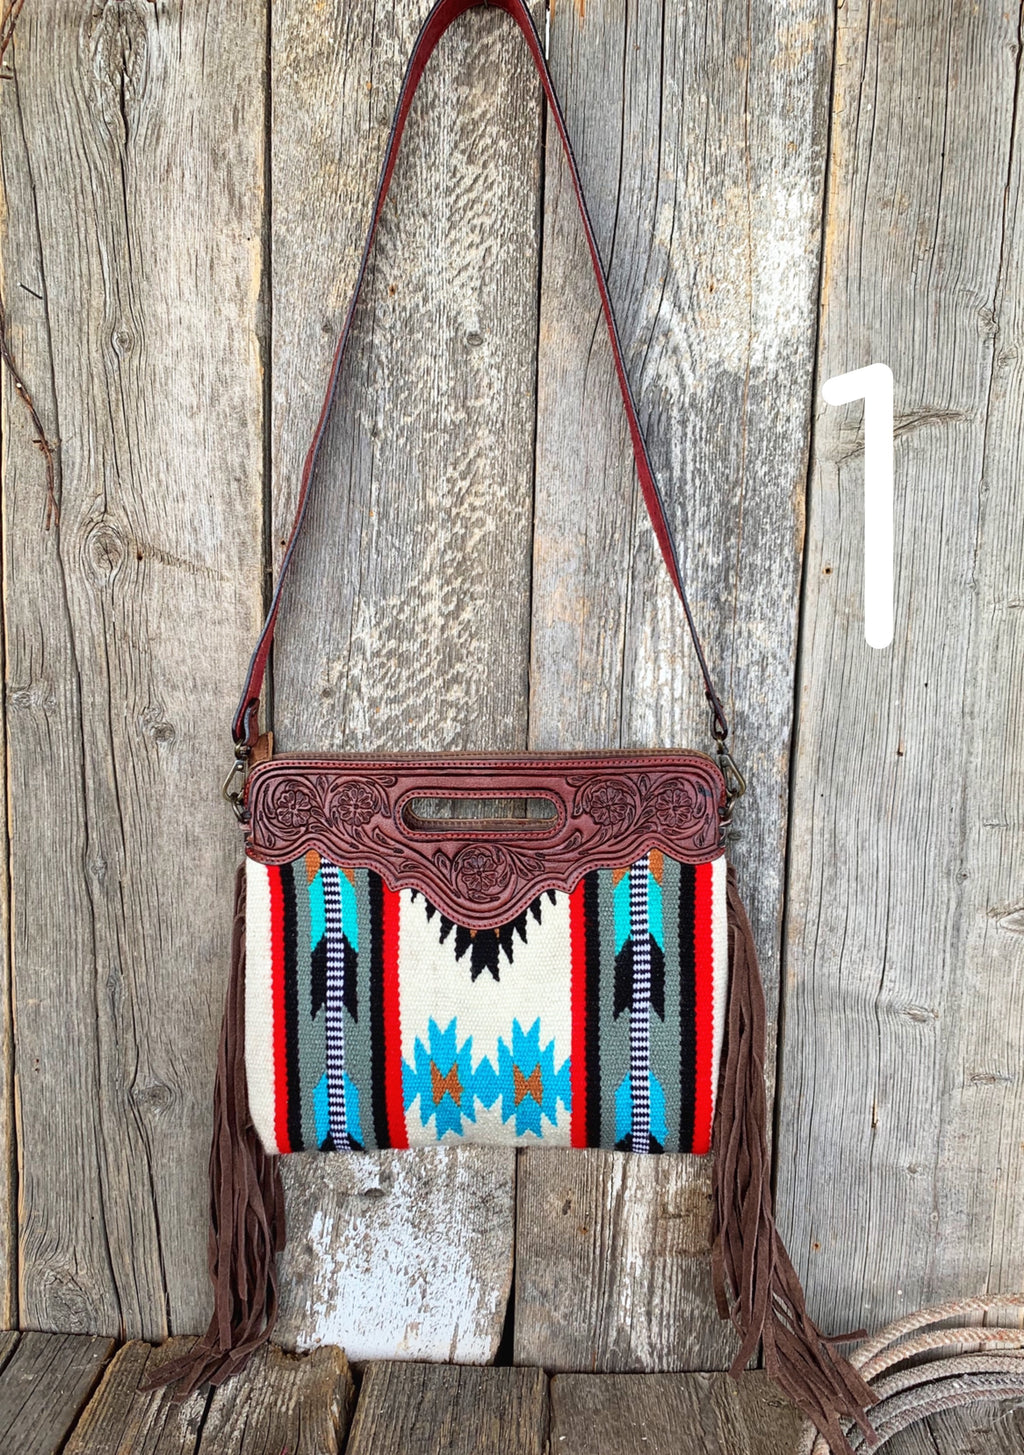 The Round Up: Saddle Blanket Purse